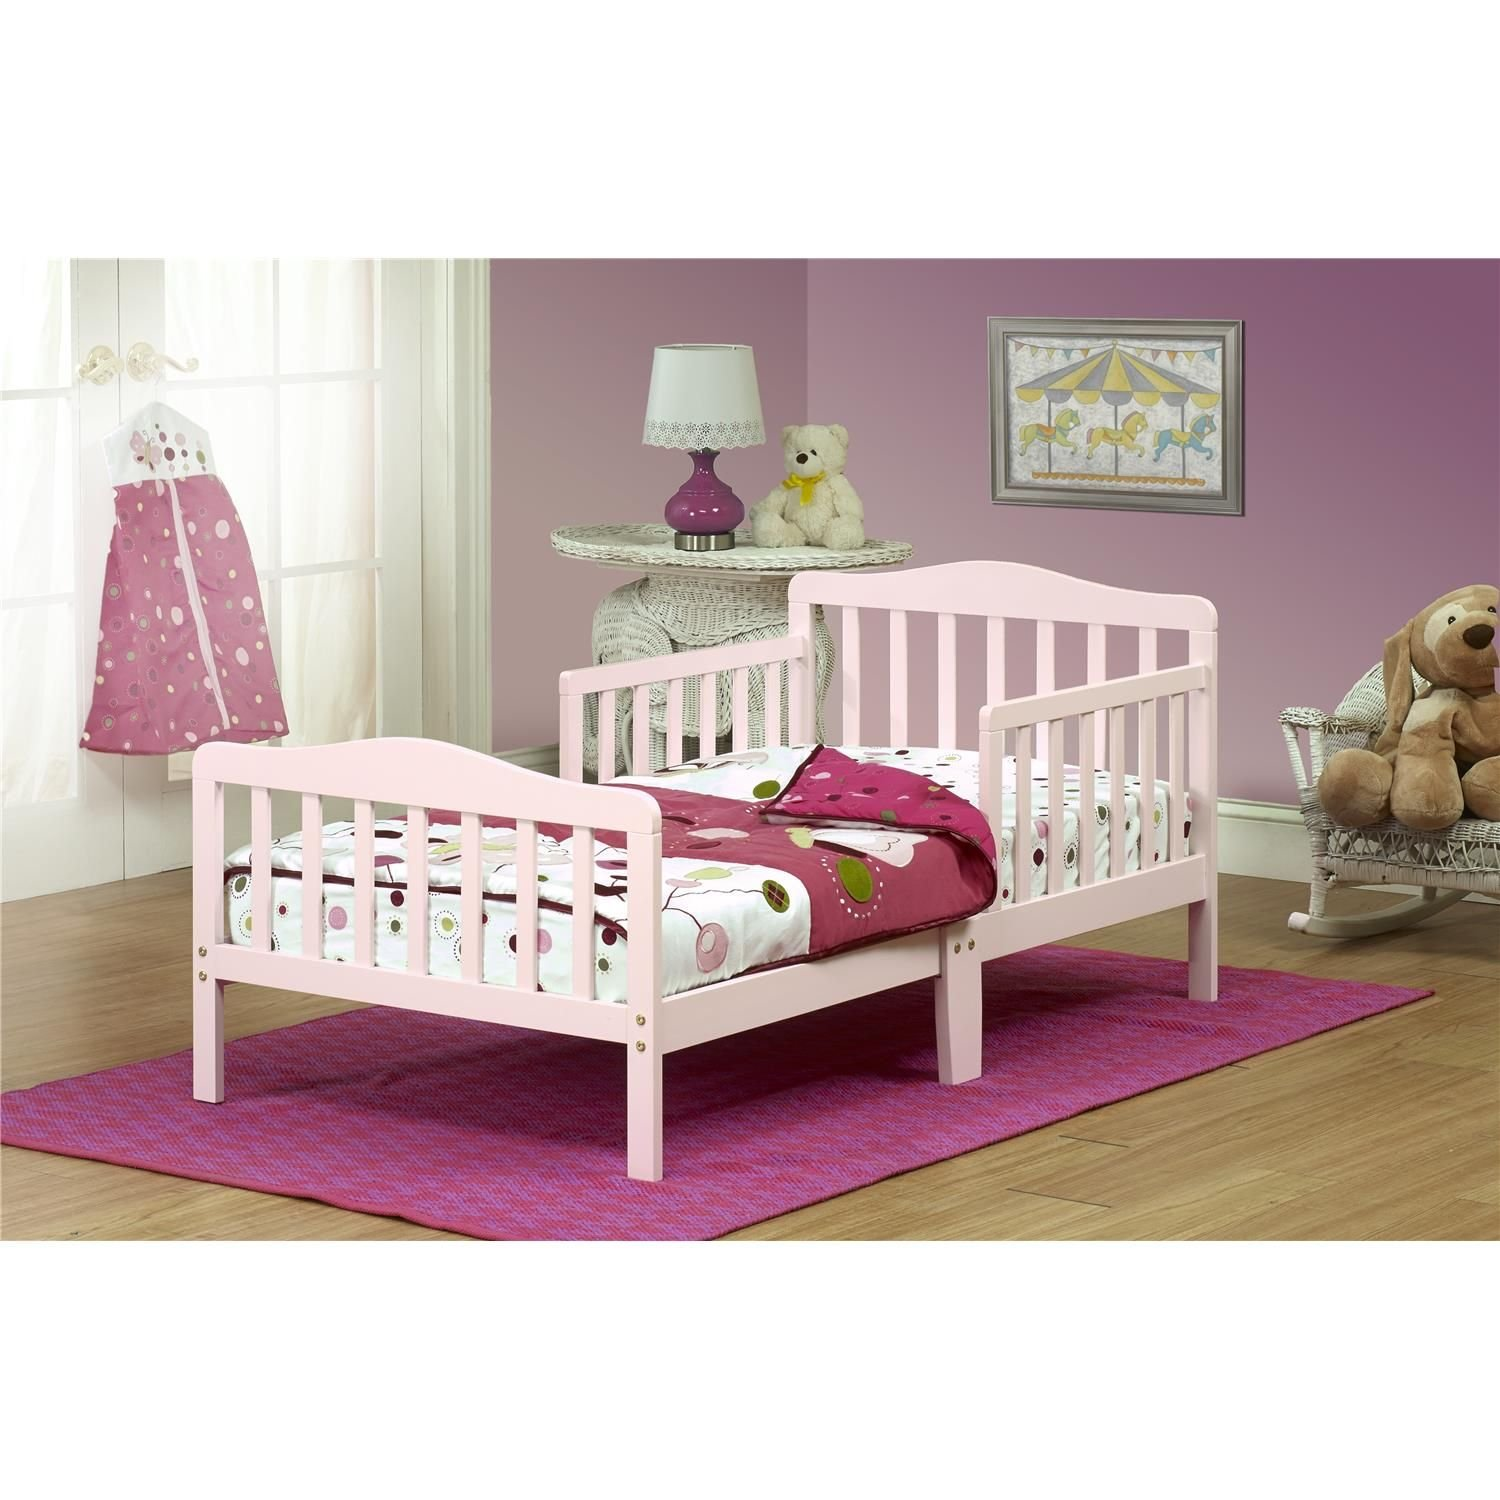 Orbelle 3-6T Toddler Bed, Pink